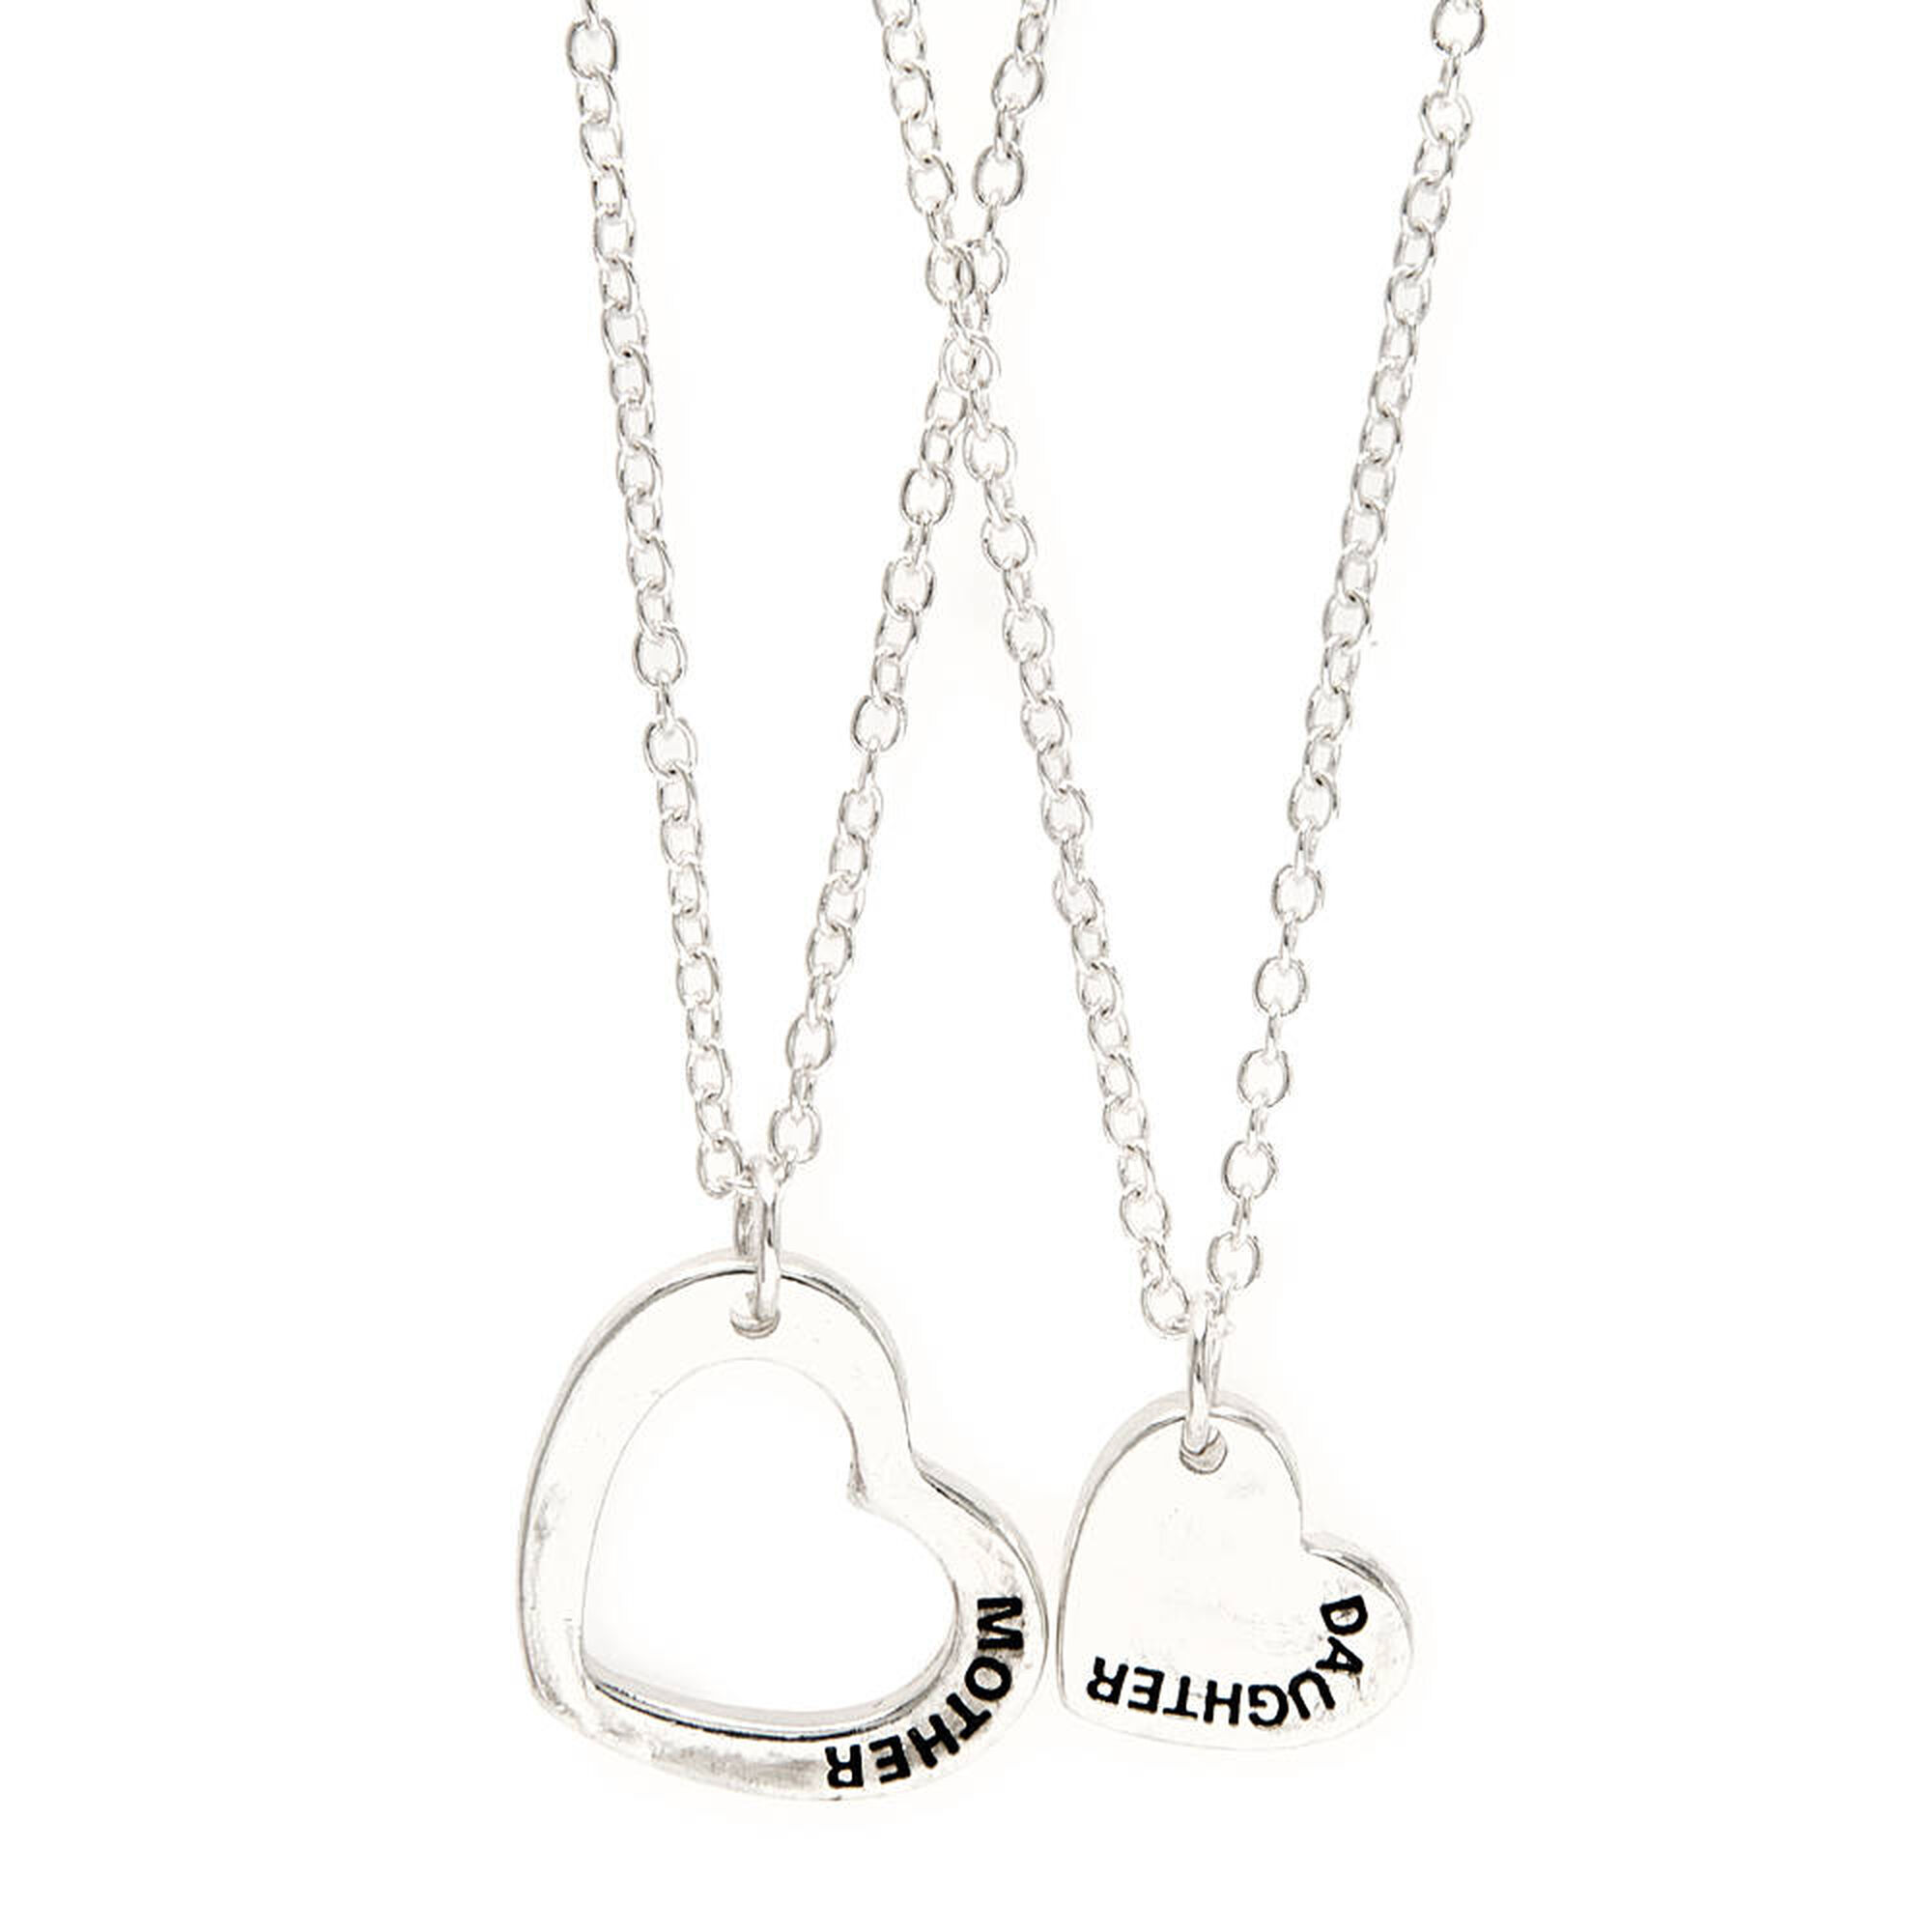 Mother daughter heart pendant necklaces claires us mother daughter heart pendant necklaces aloadofball Gallery